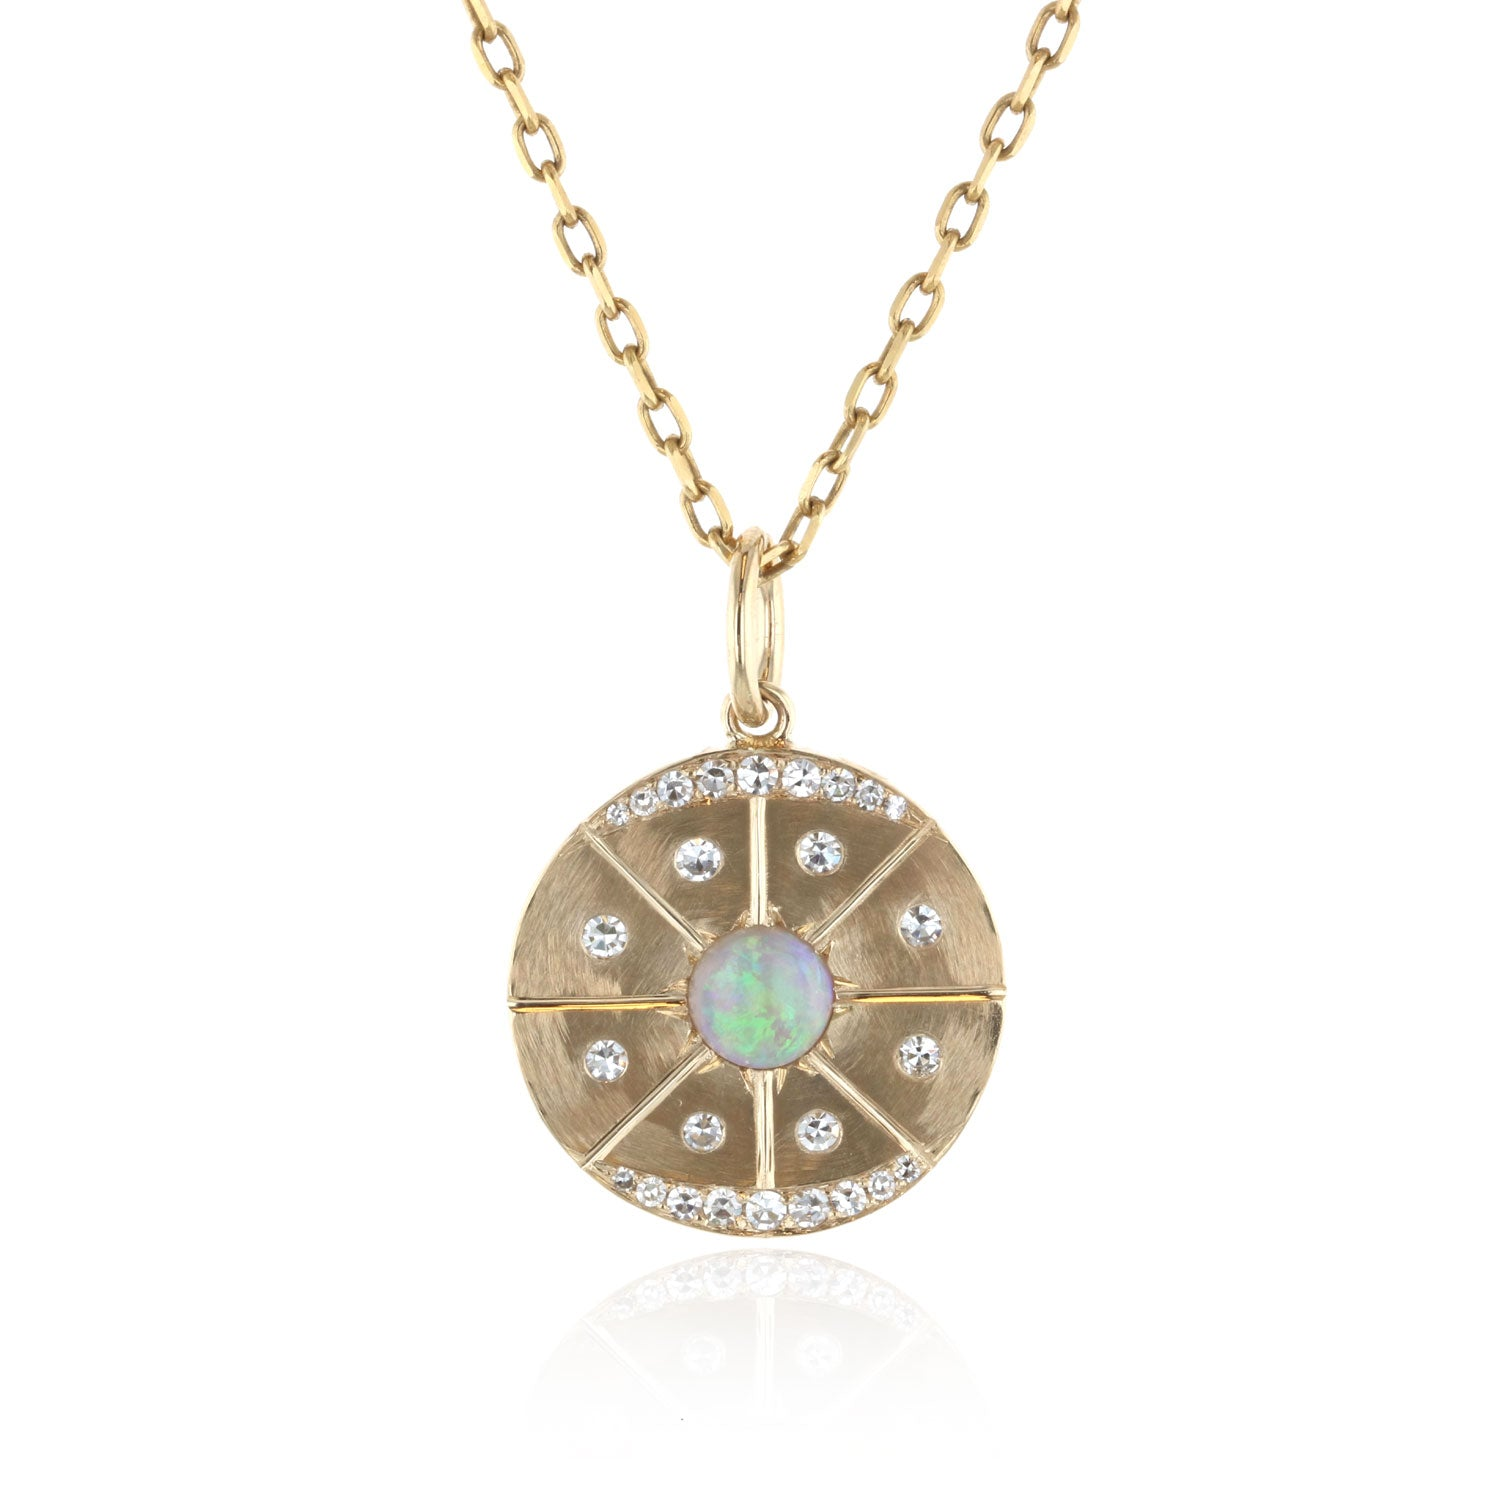 Disk Pendant with Opal And Diamonds - 18K Yellow Gold